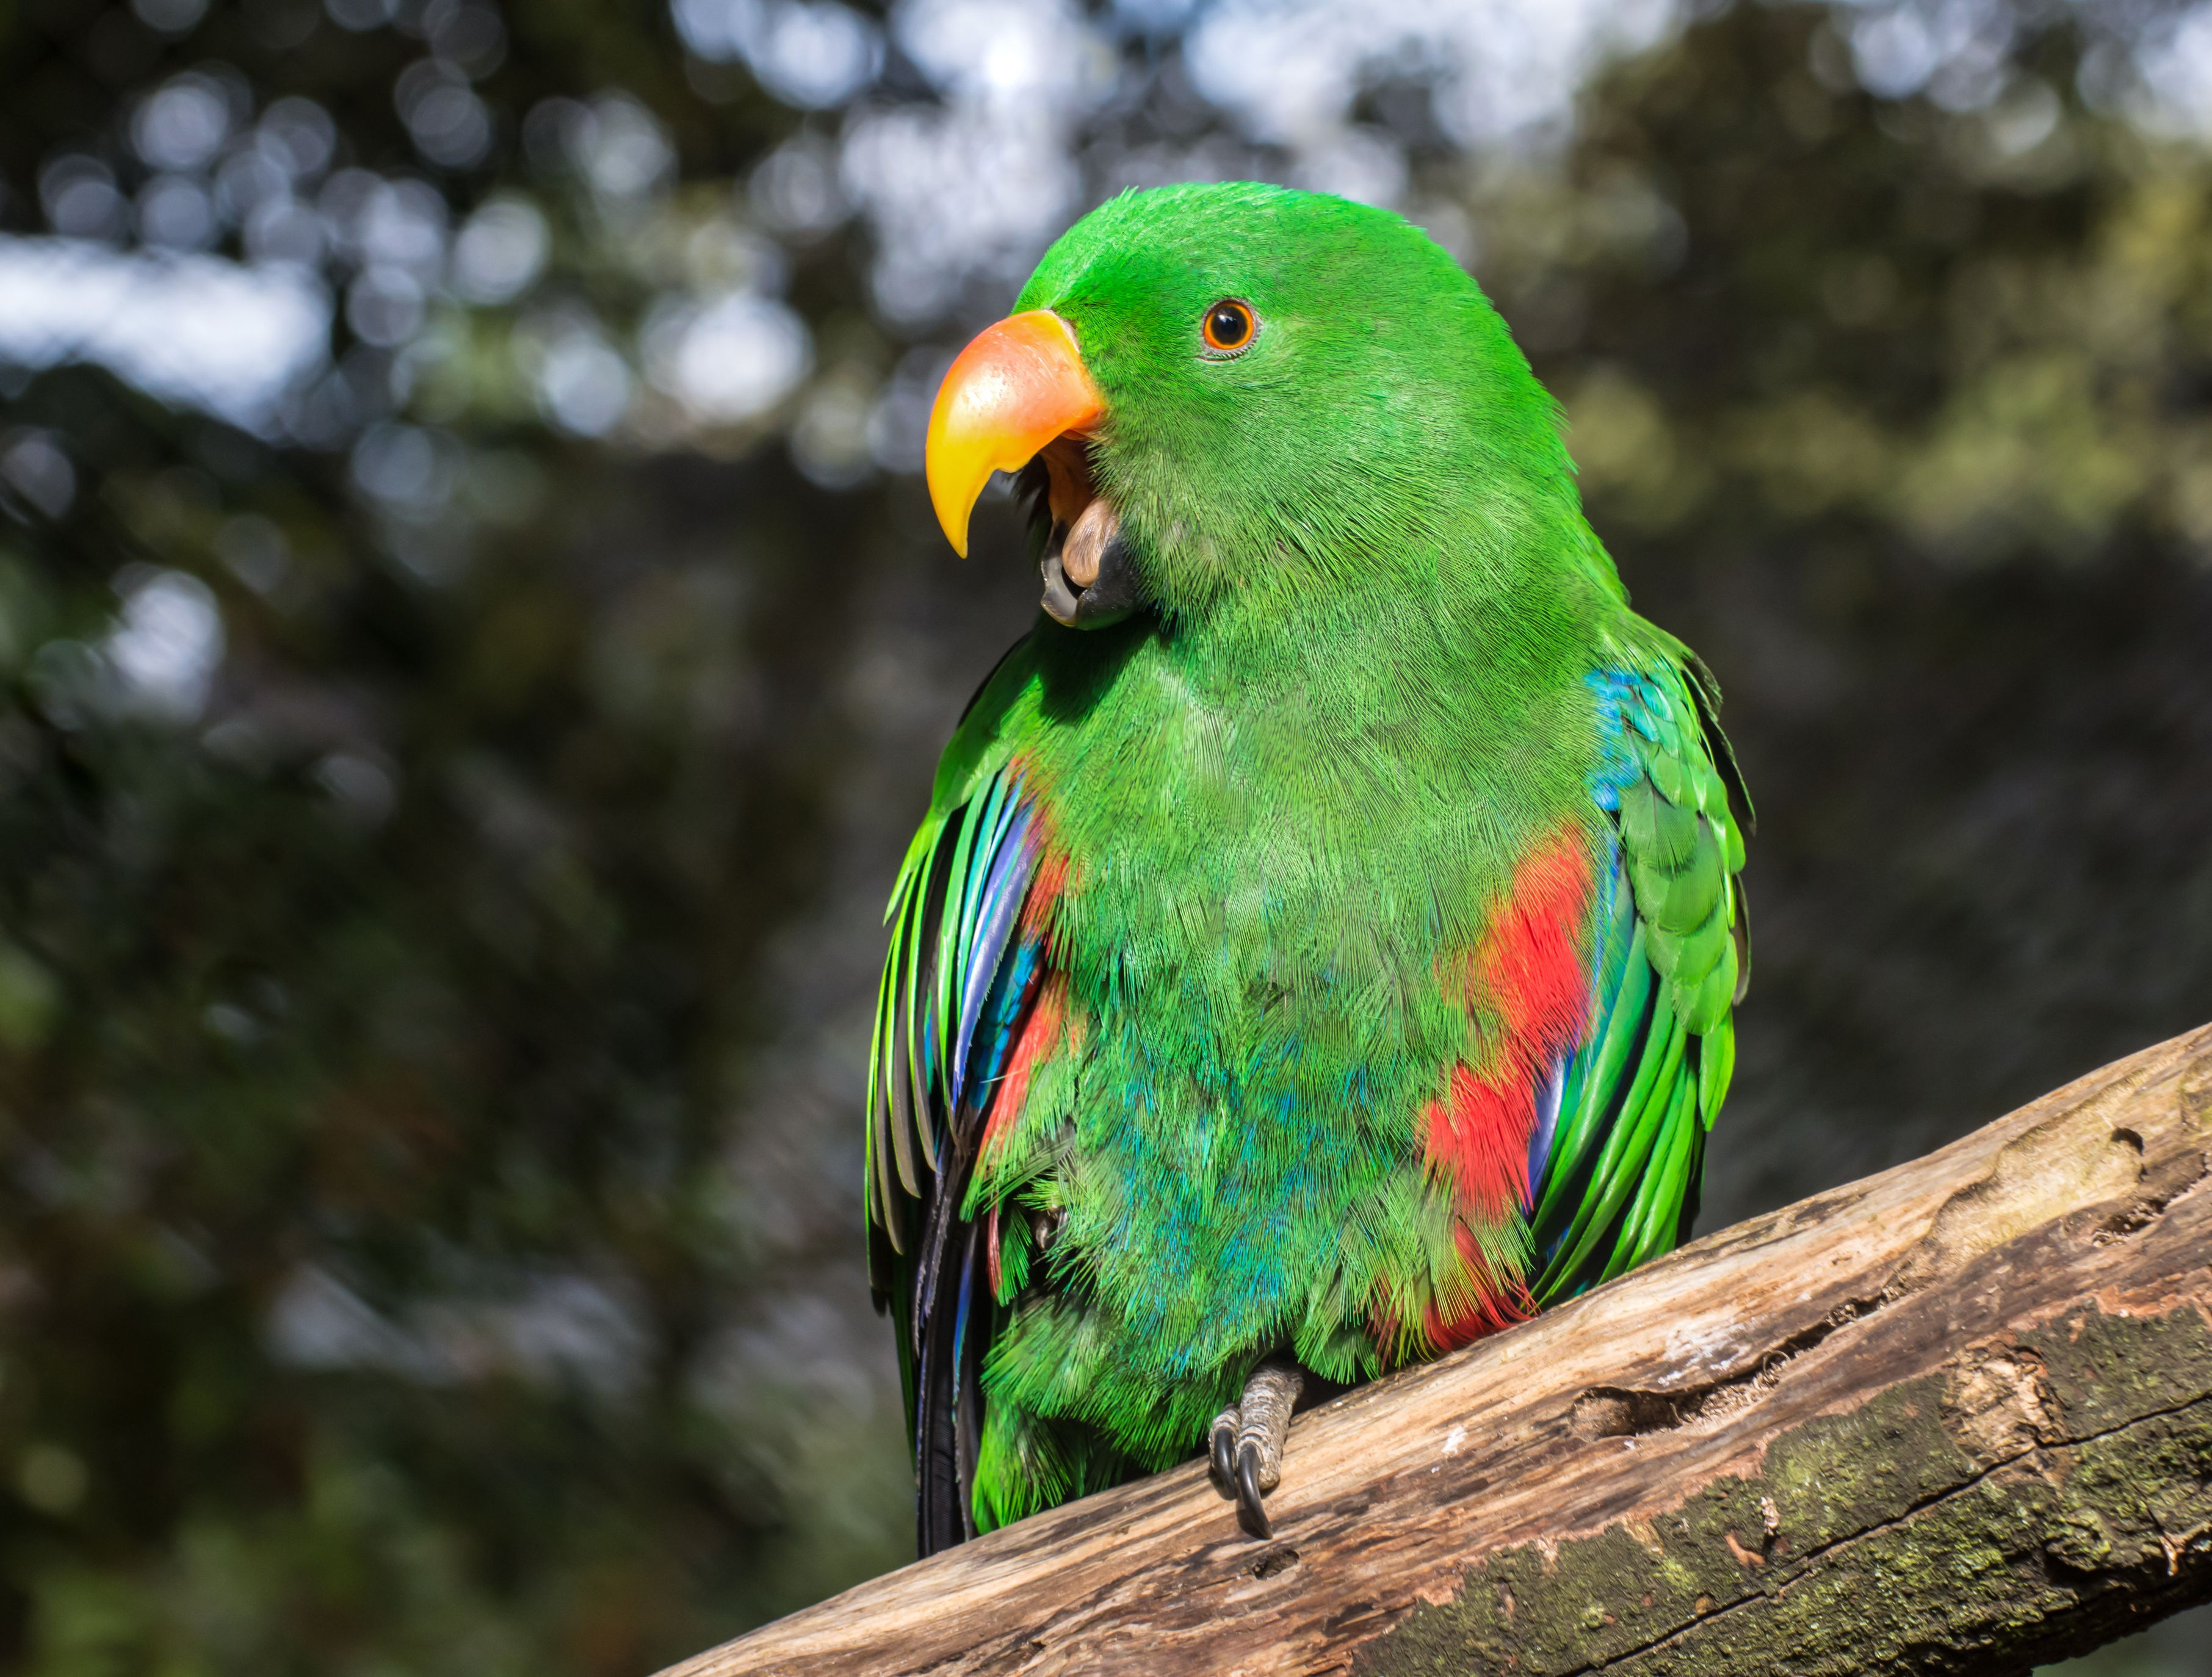 Eclectus parrot perched on a branch